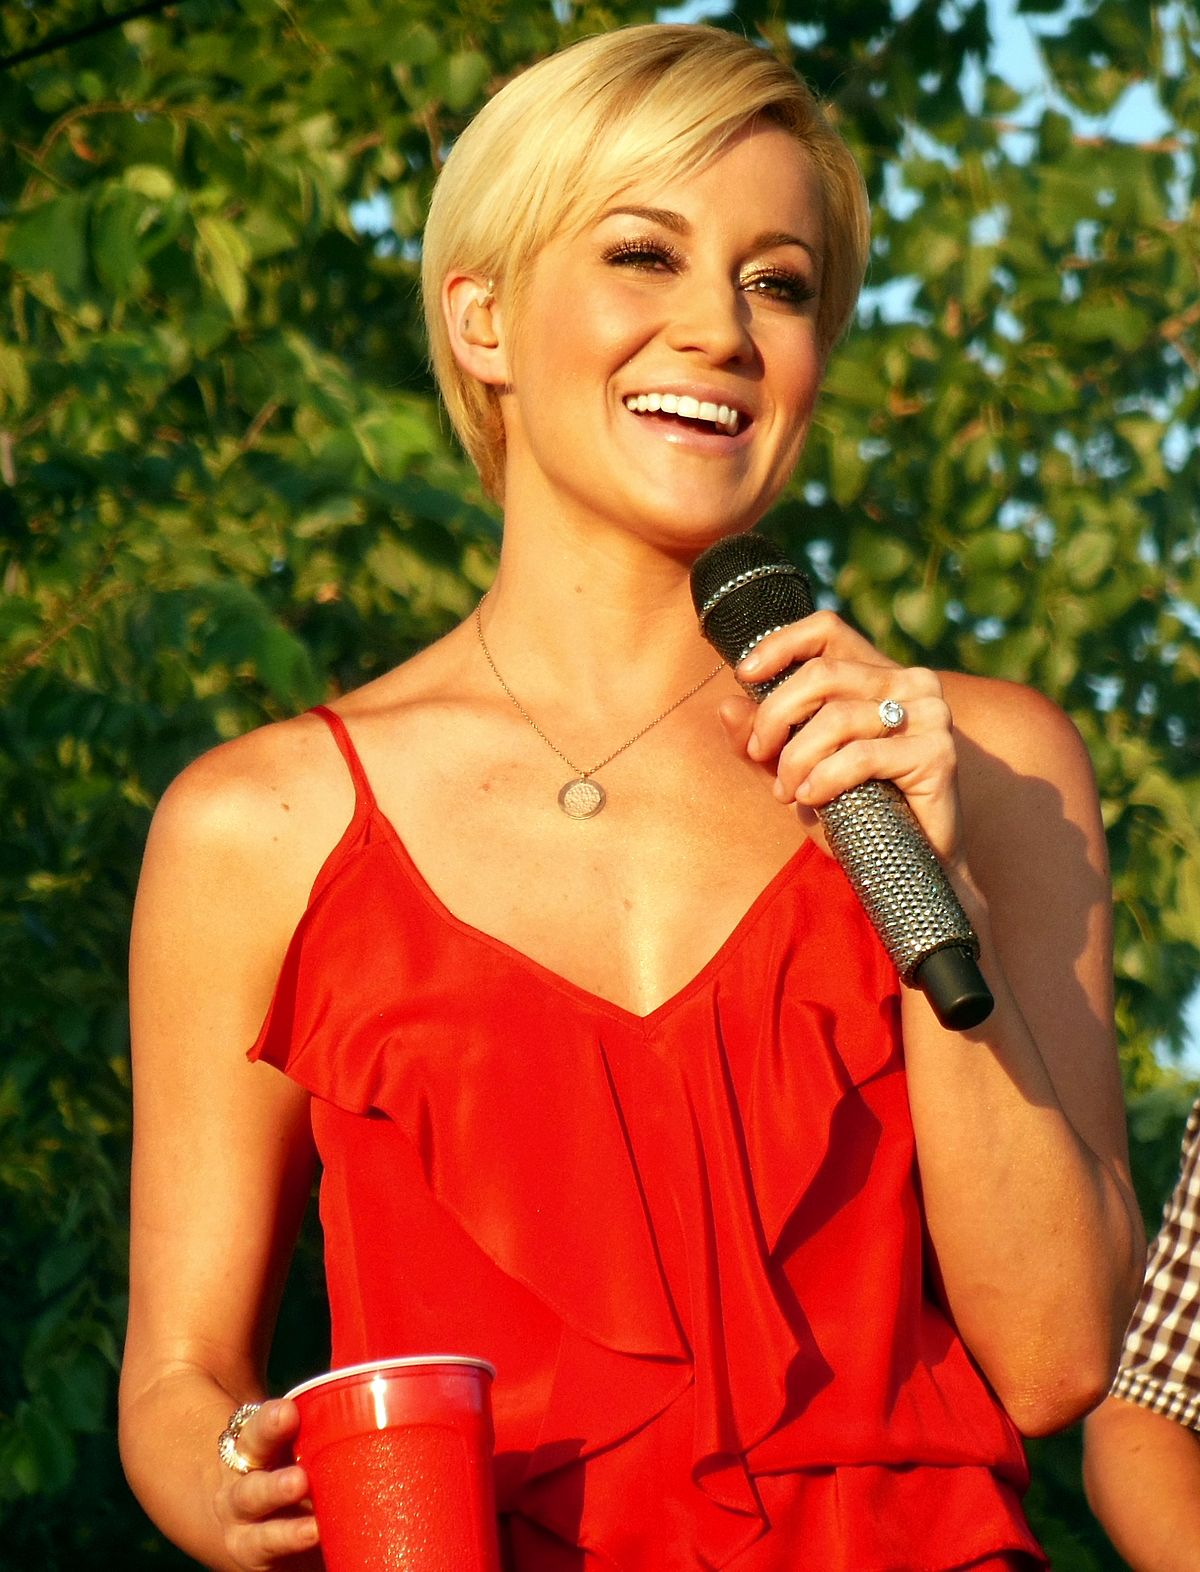 kellie pickler hot naked body